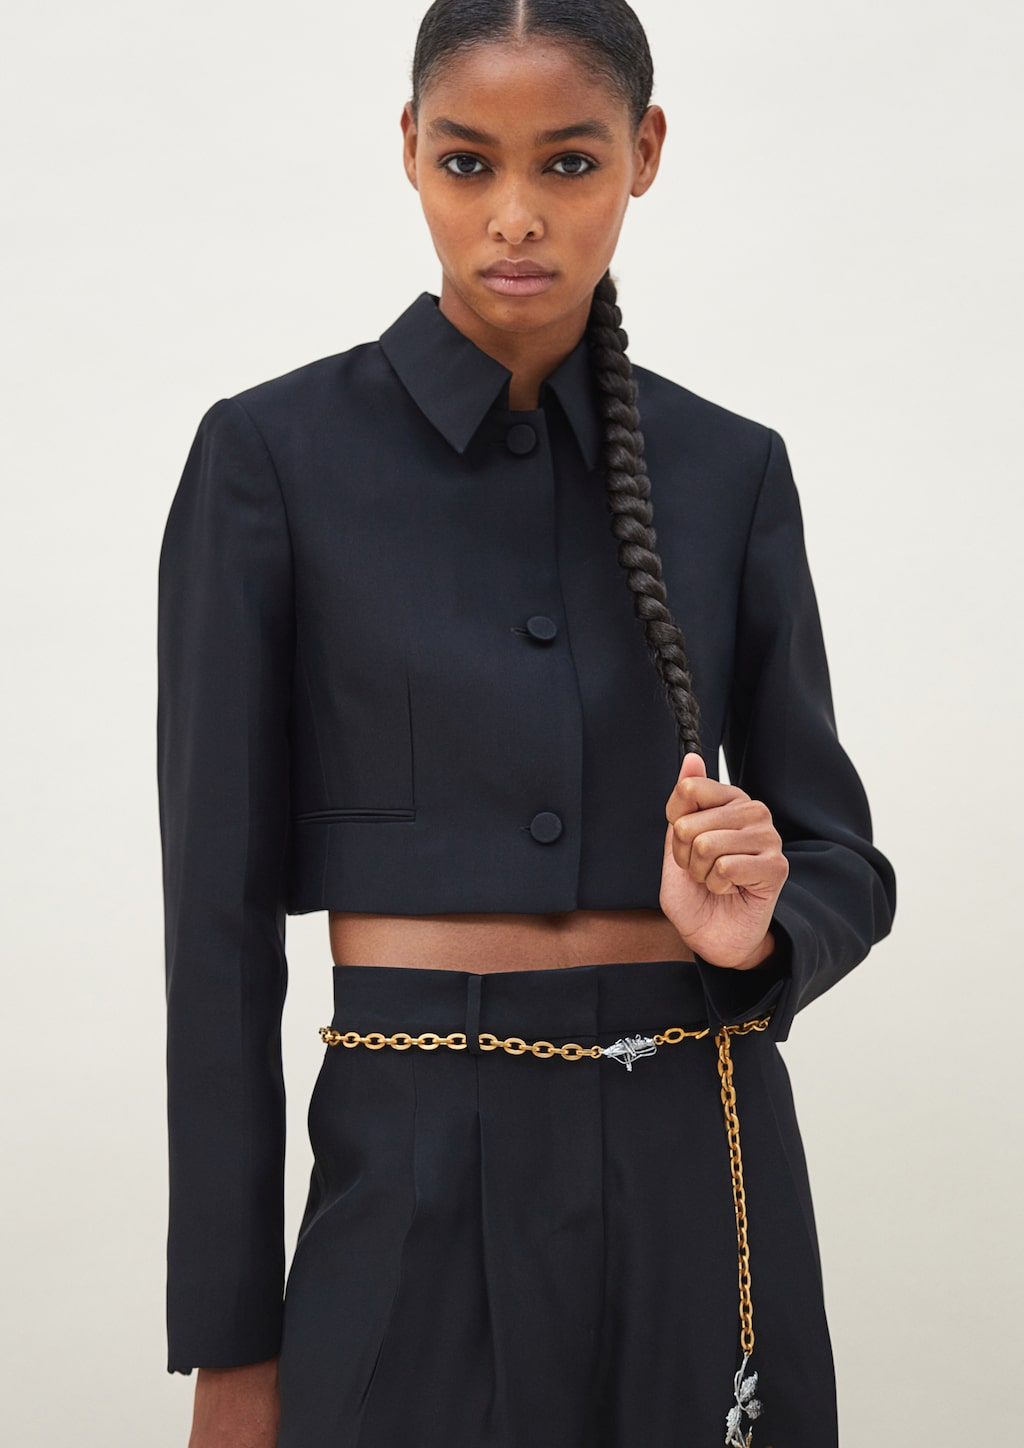 H&M Conscious Exclusive AW20.